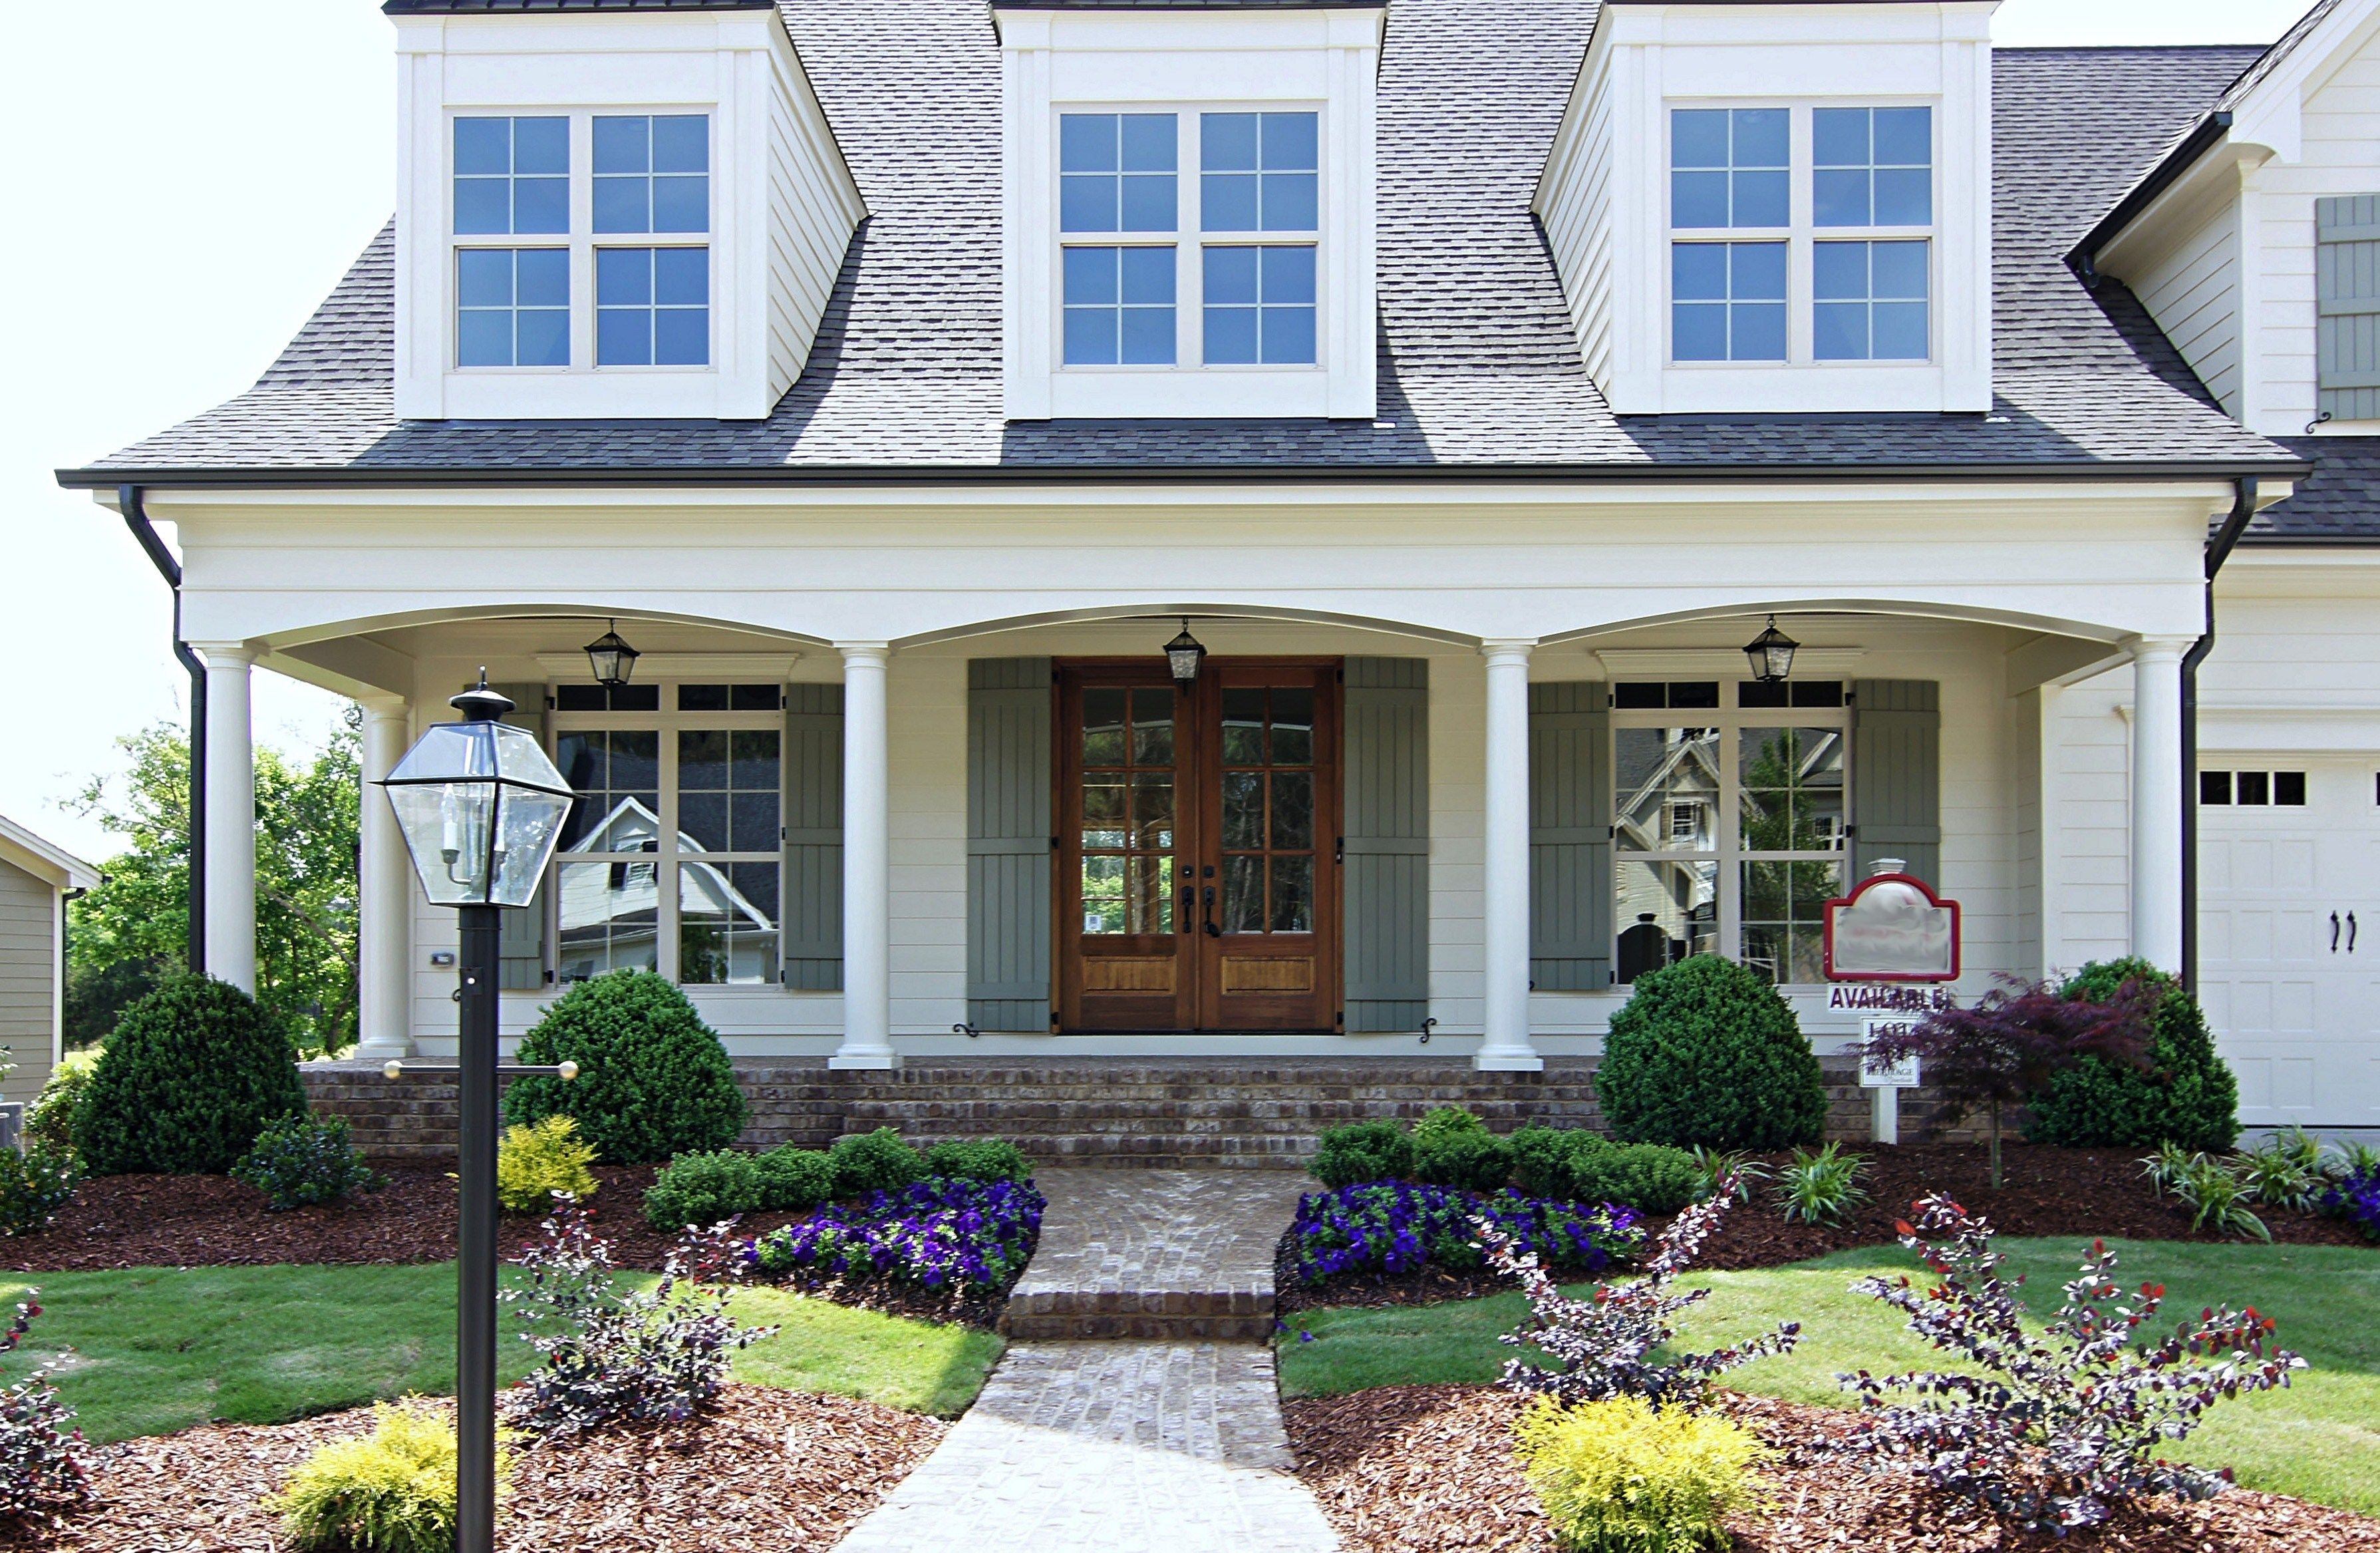 Brick House Front Elevation : Love the colors and elevation of this house also like